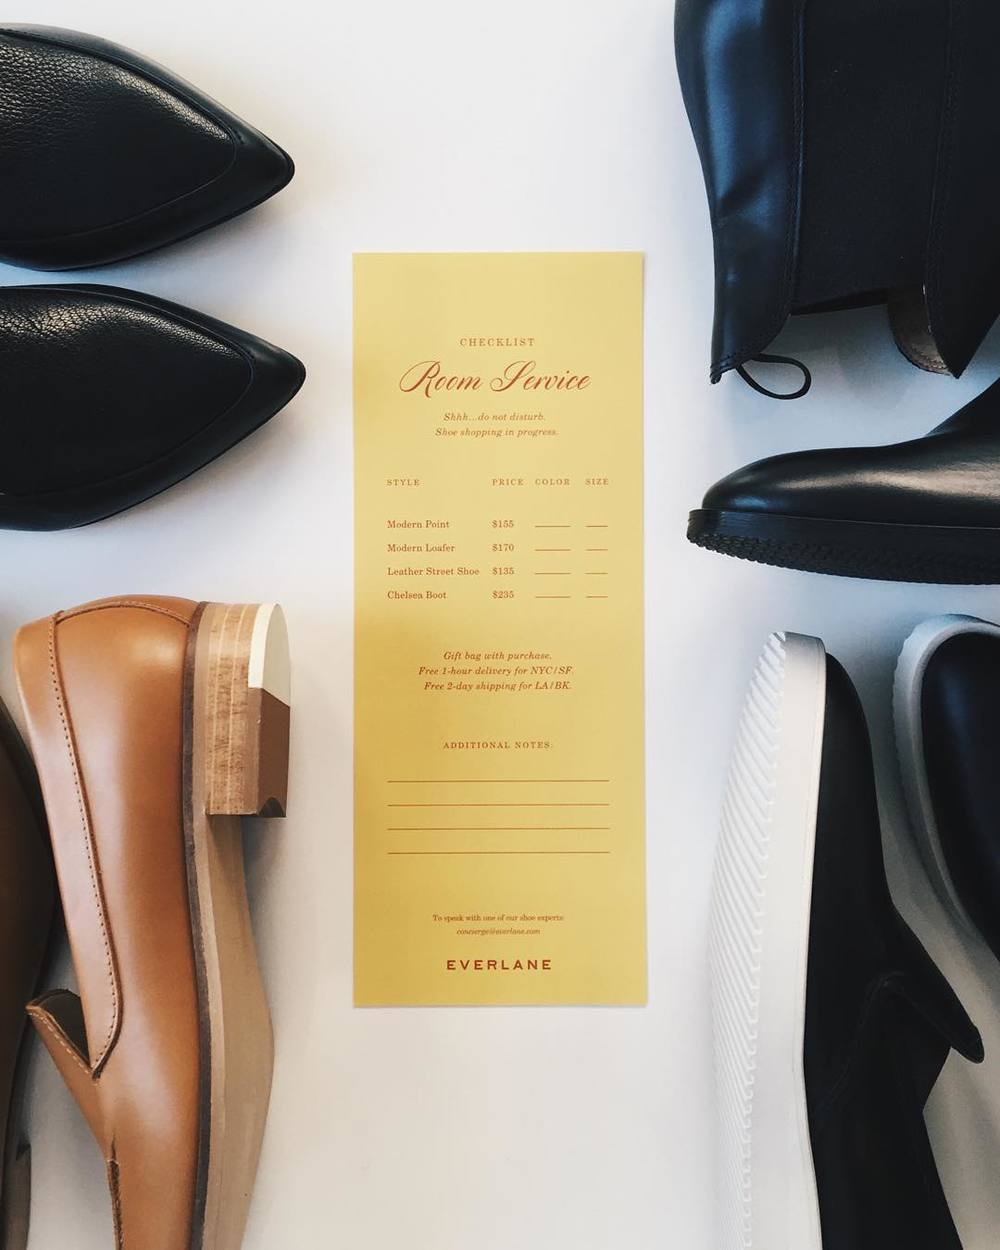 IMAGE FROM EVERLANE